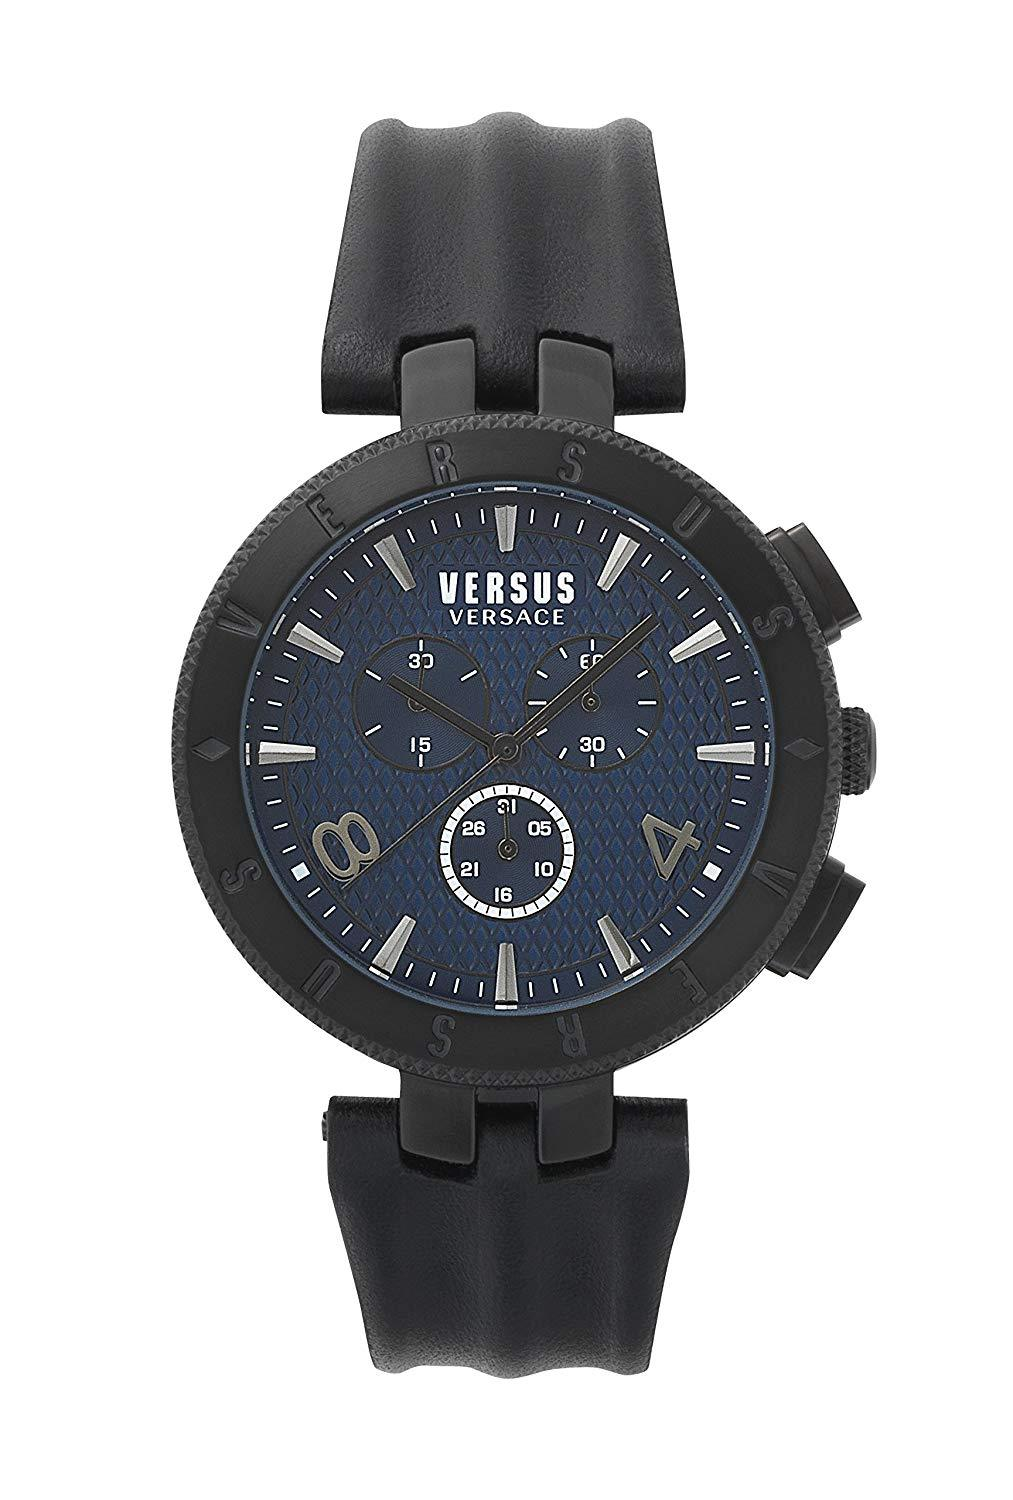 Versus Versace Logo Chronograph Black - Watches & Crystals